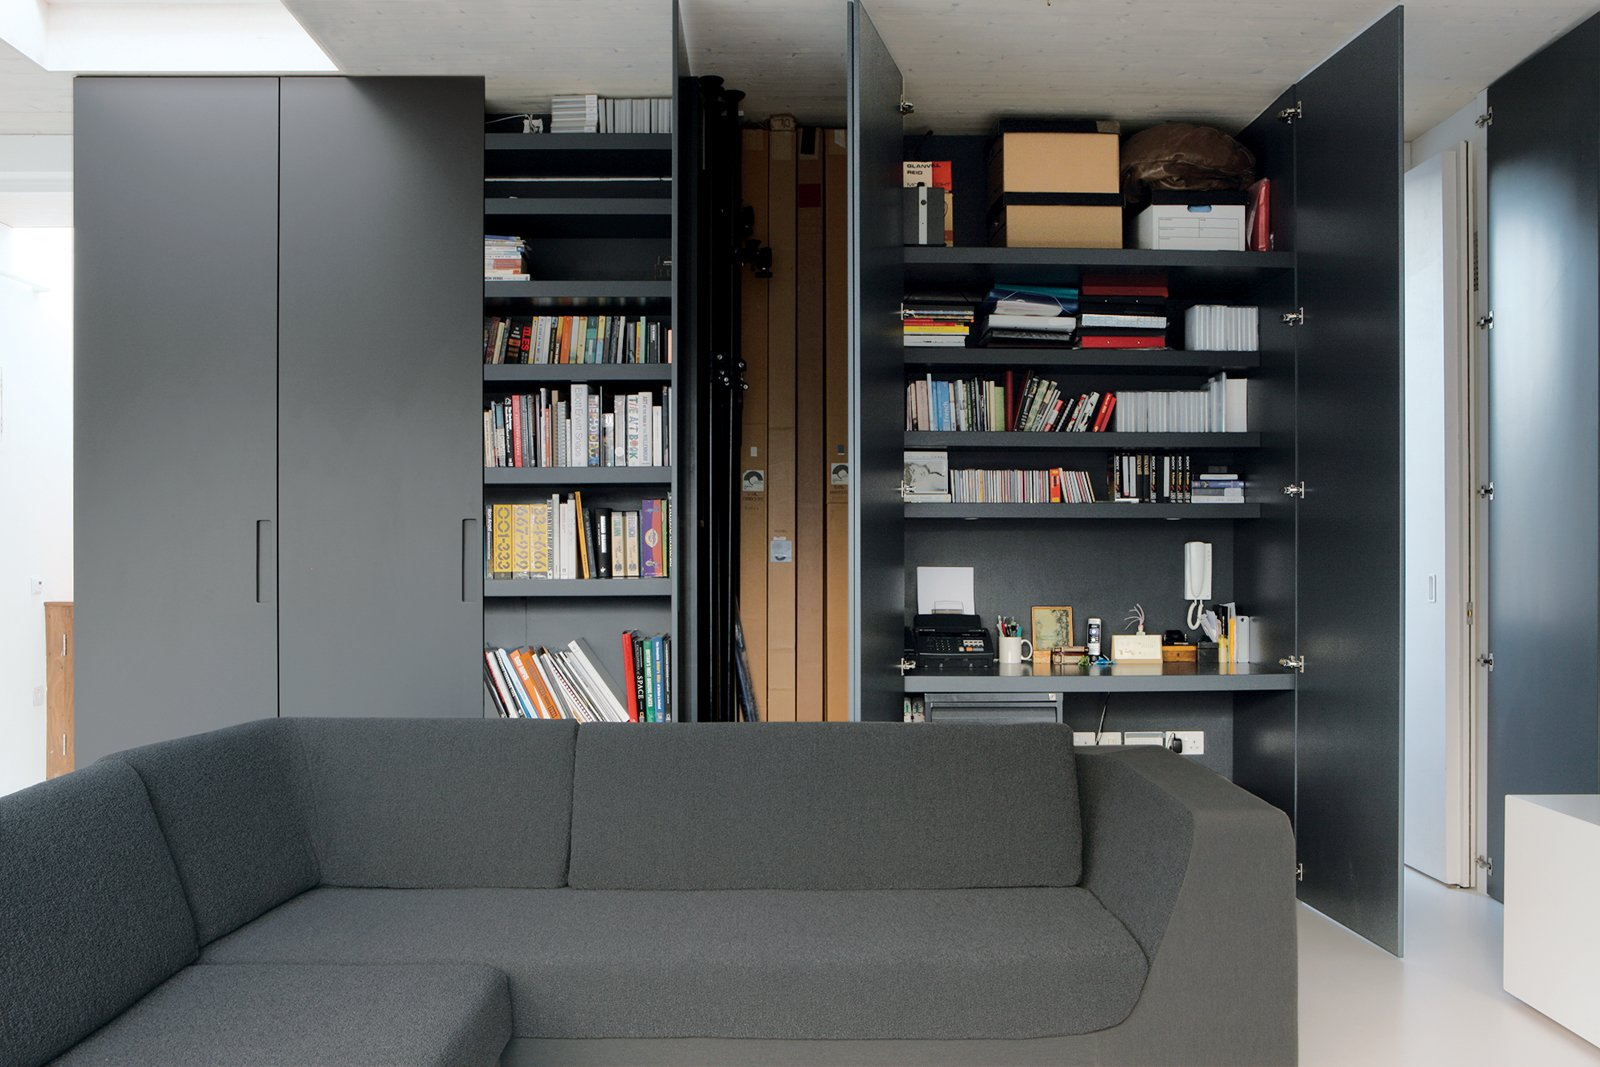 Reeve's partner, Michela Meazza, uses built-in closets for her home office. The imposing gunmetal gray doors can simply be swung shut at the end of a long day's work.